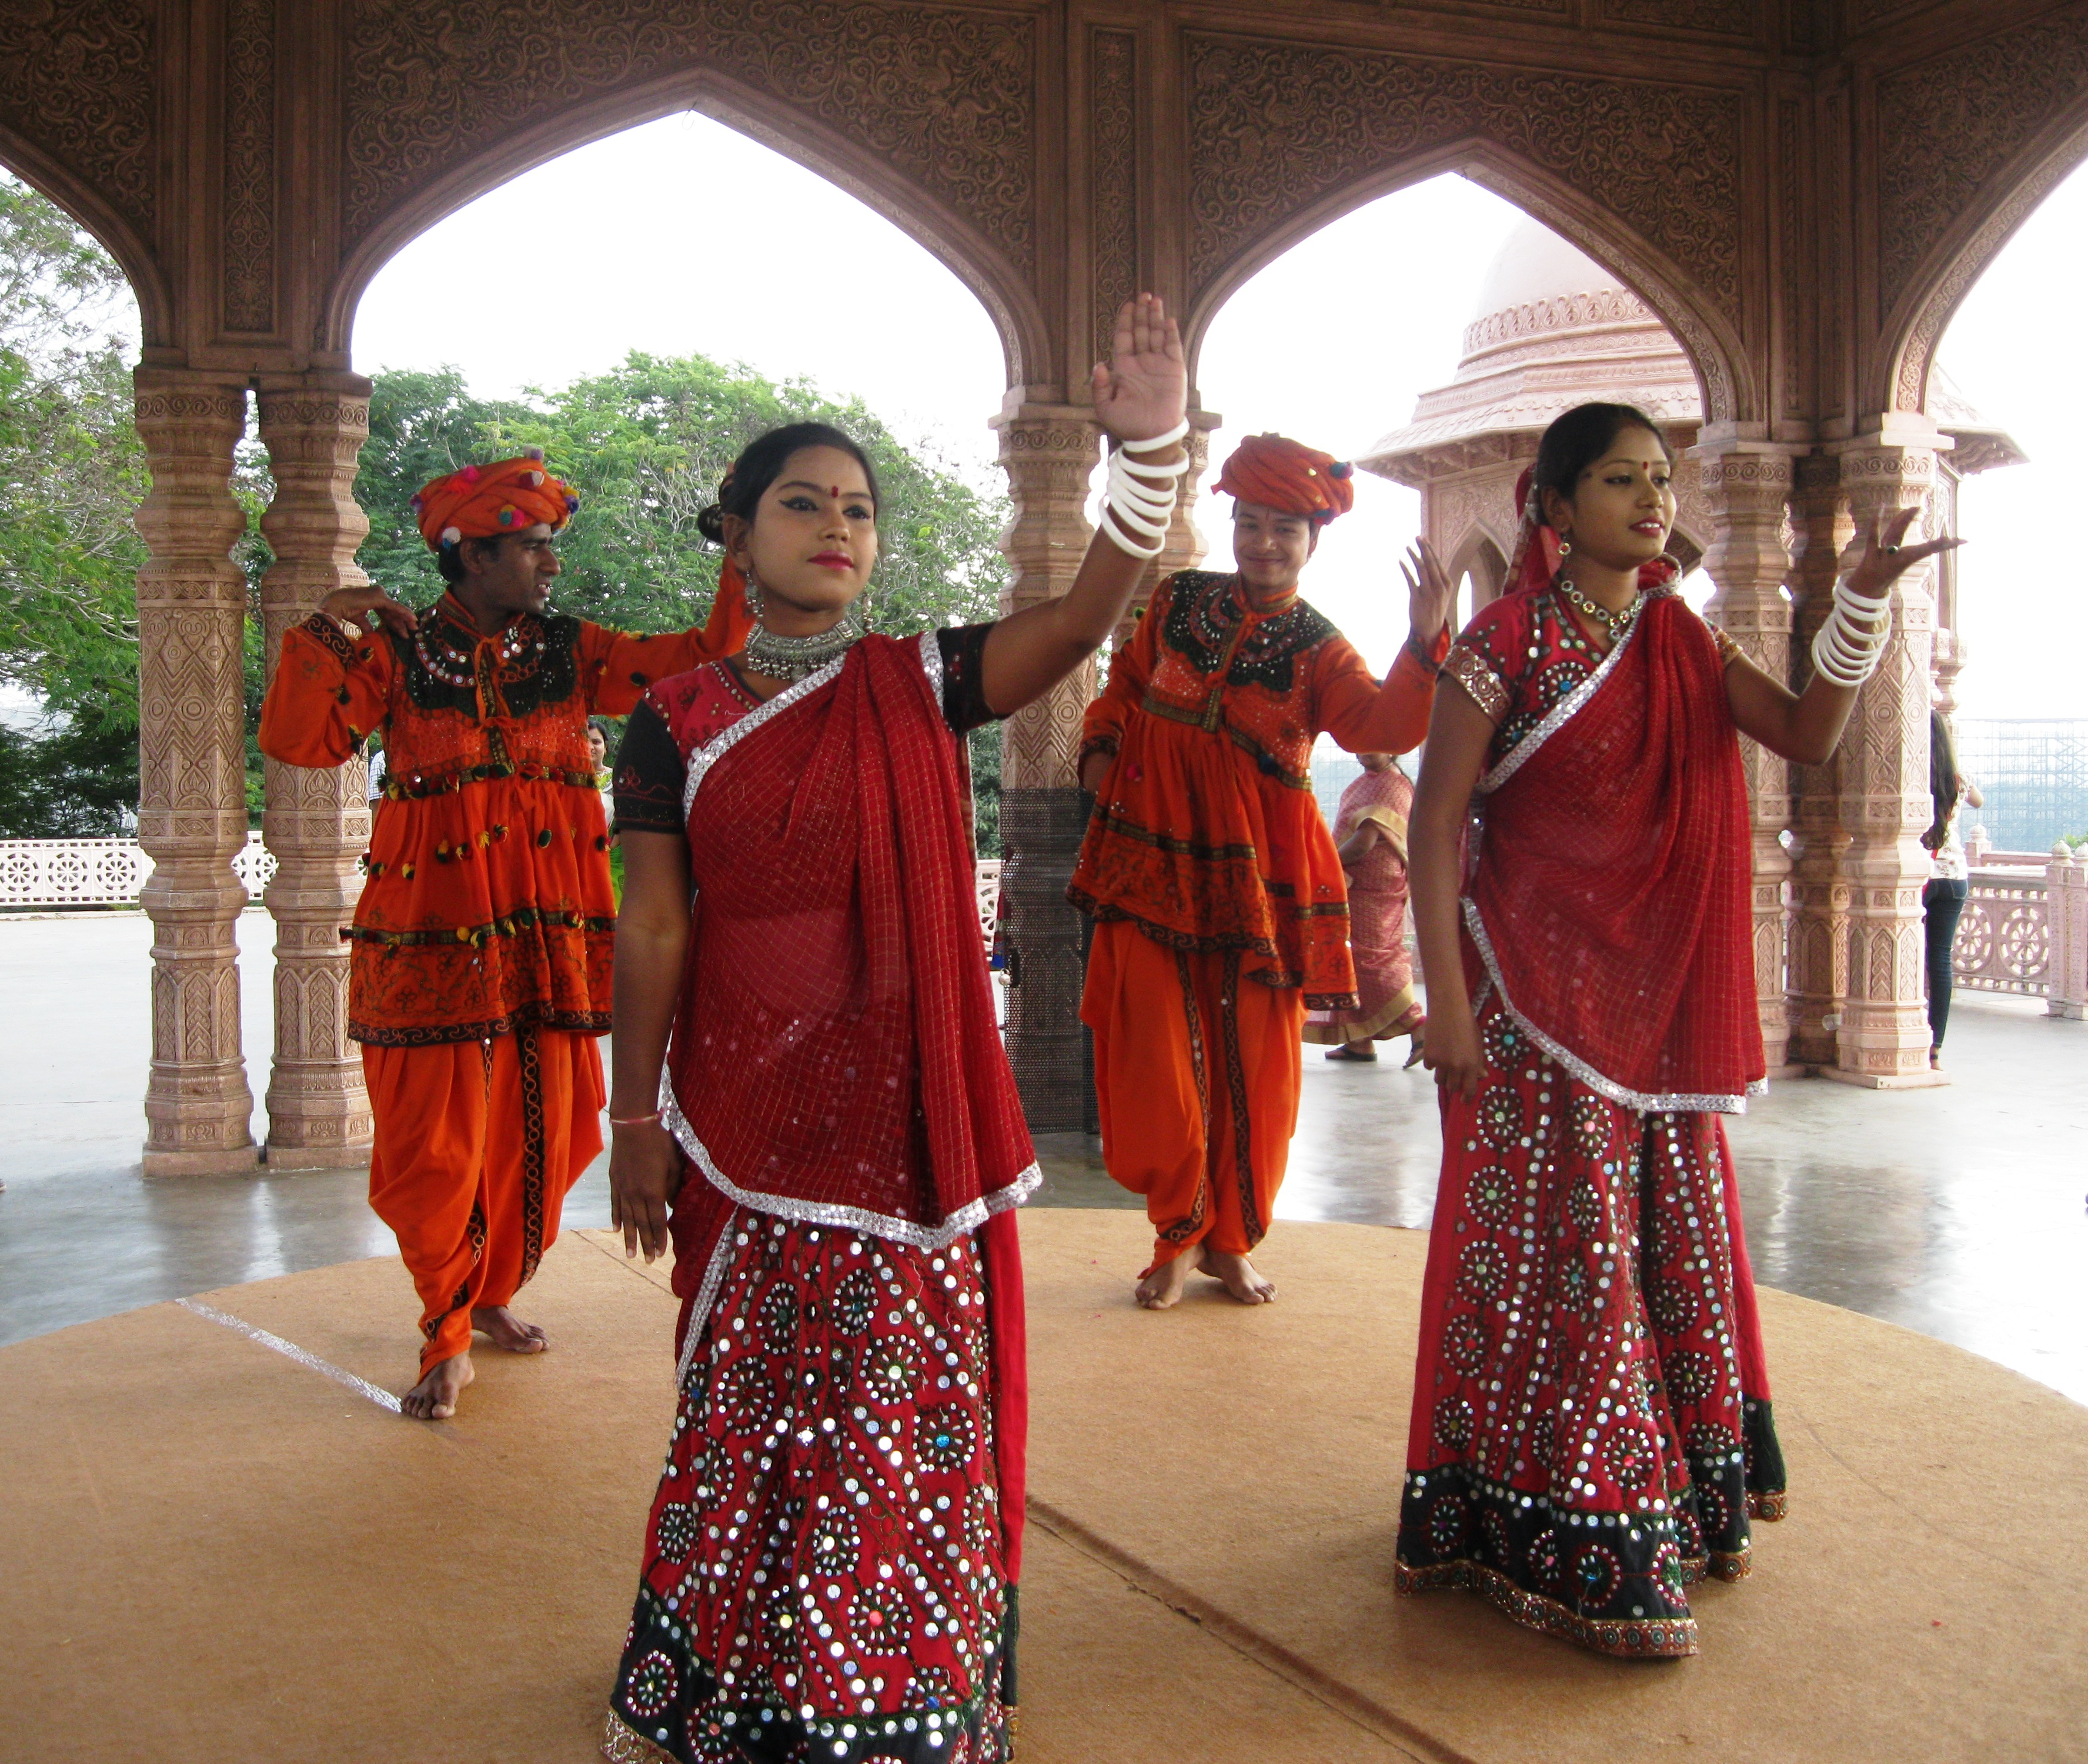 Kalbelia dance performance at Jaipur Kalbelia folk songs and dances of Rajasthan - India Oindrila De